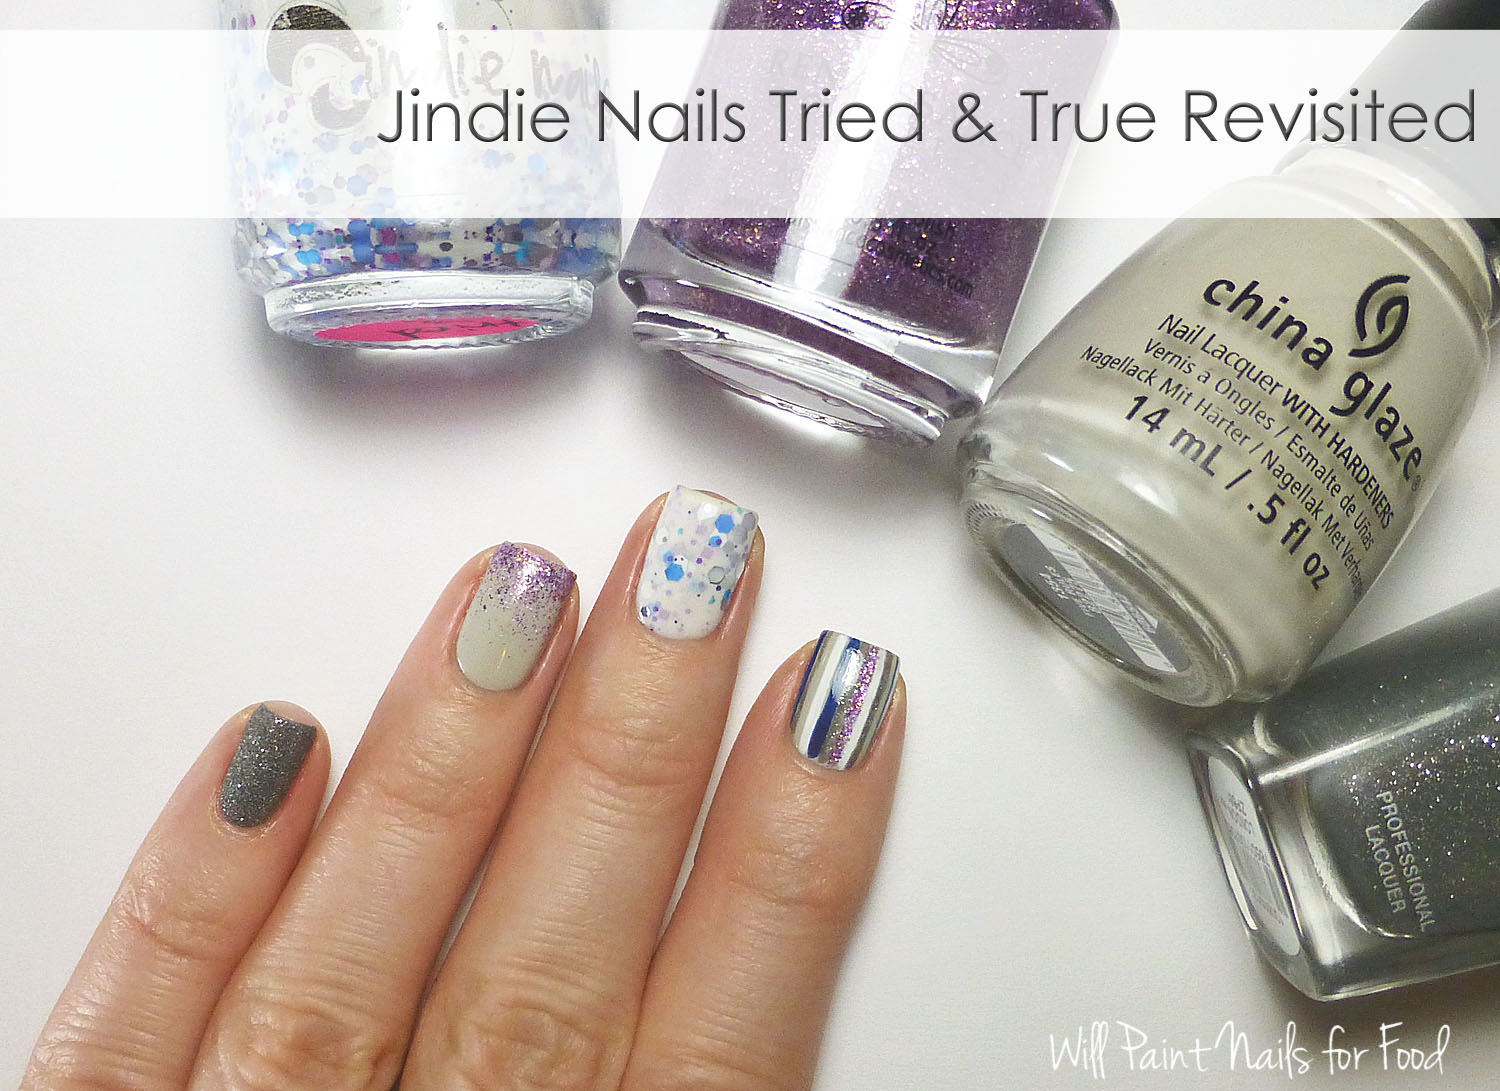 Jindie Nails Tried & True mix and match nail art